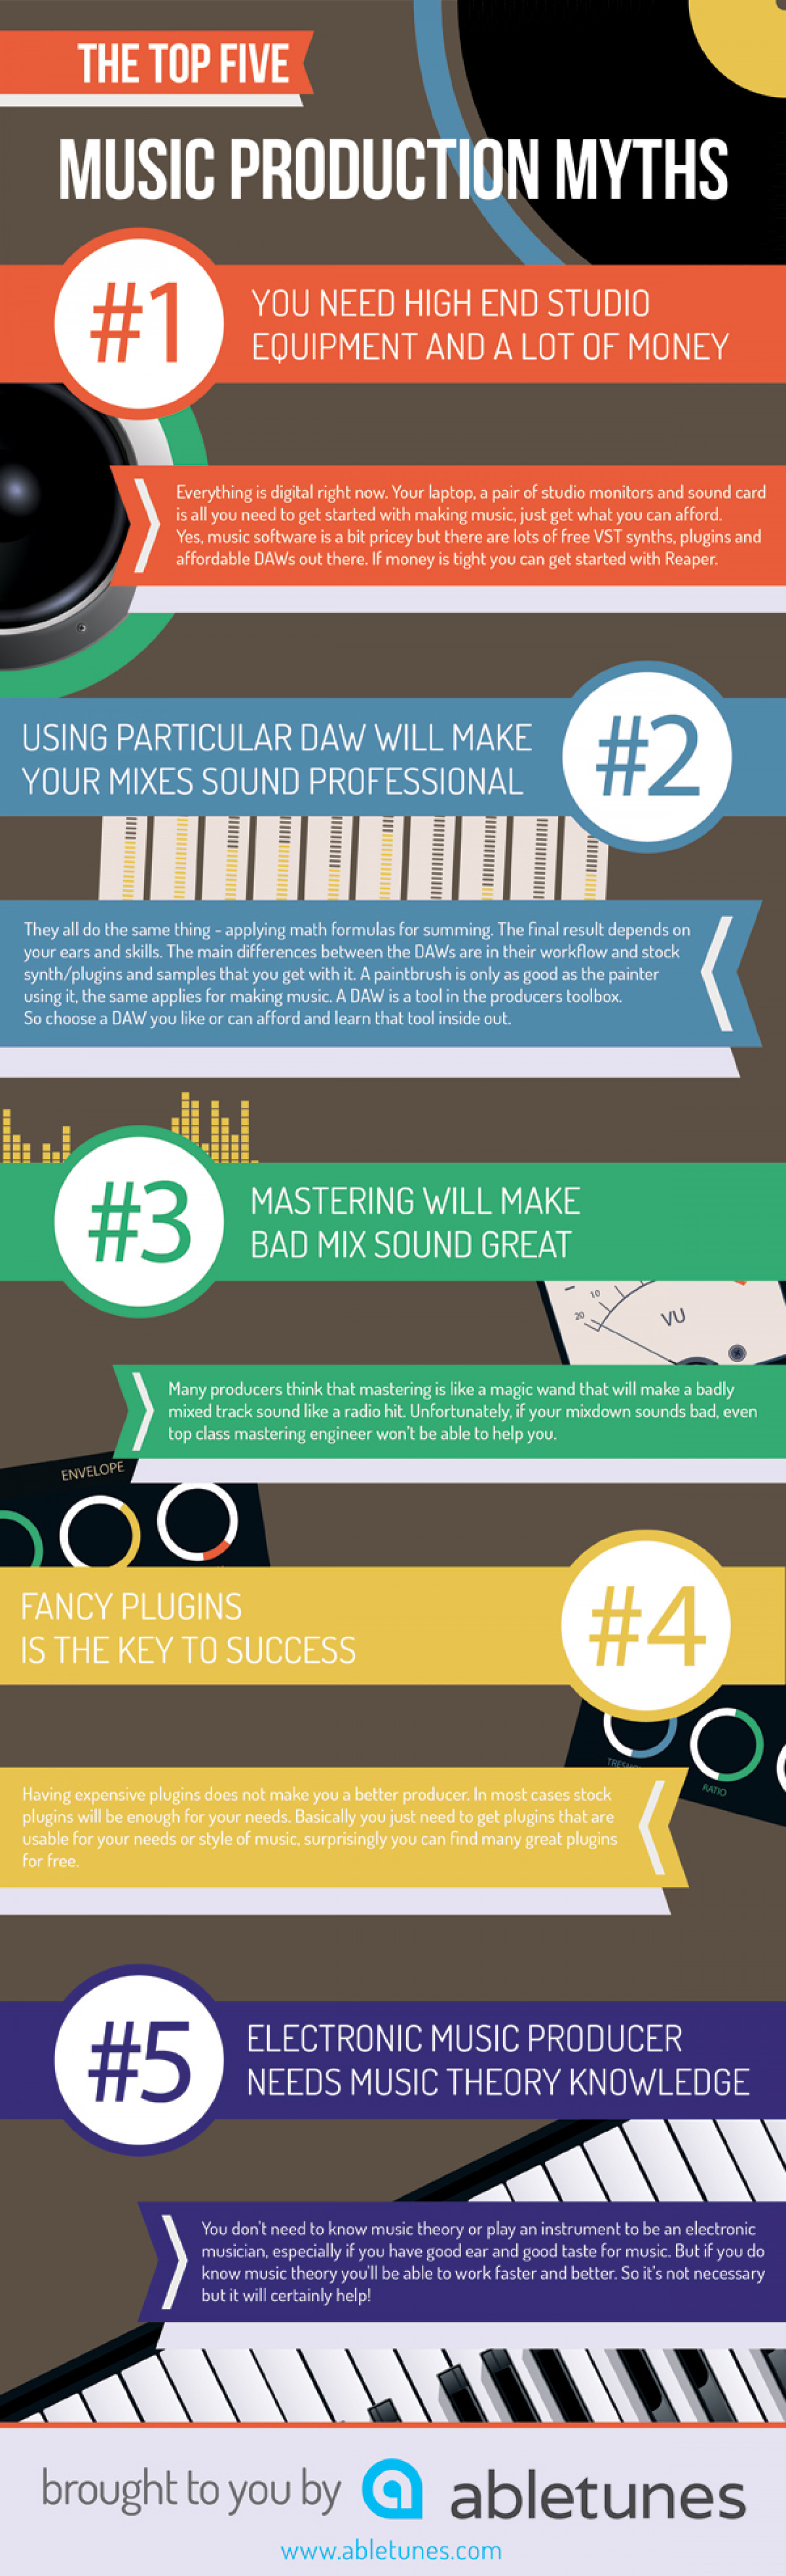 The Top Five Music Production Myths Infographic